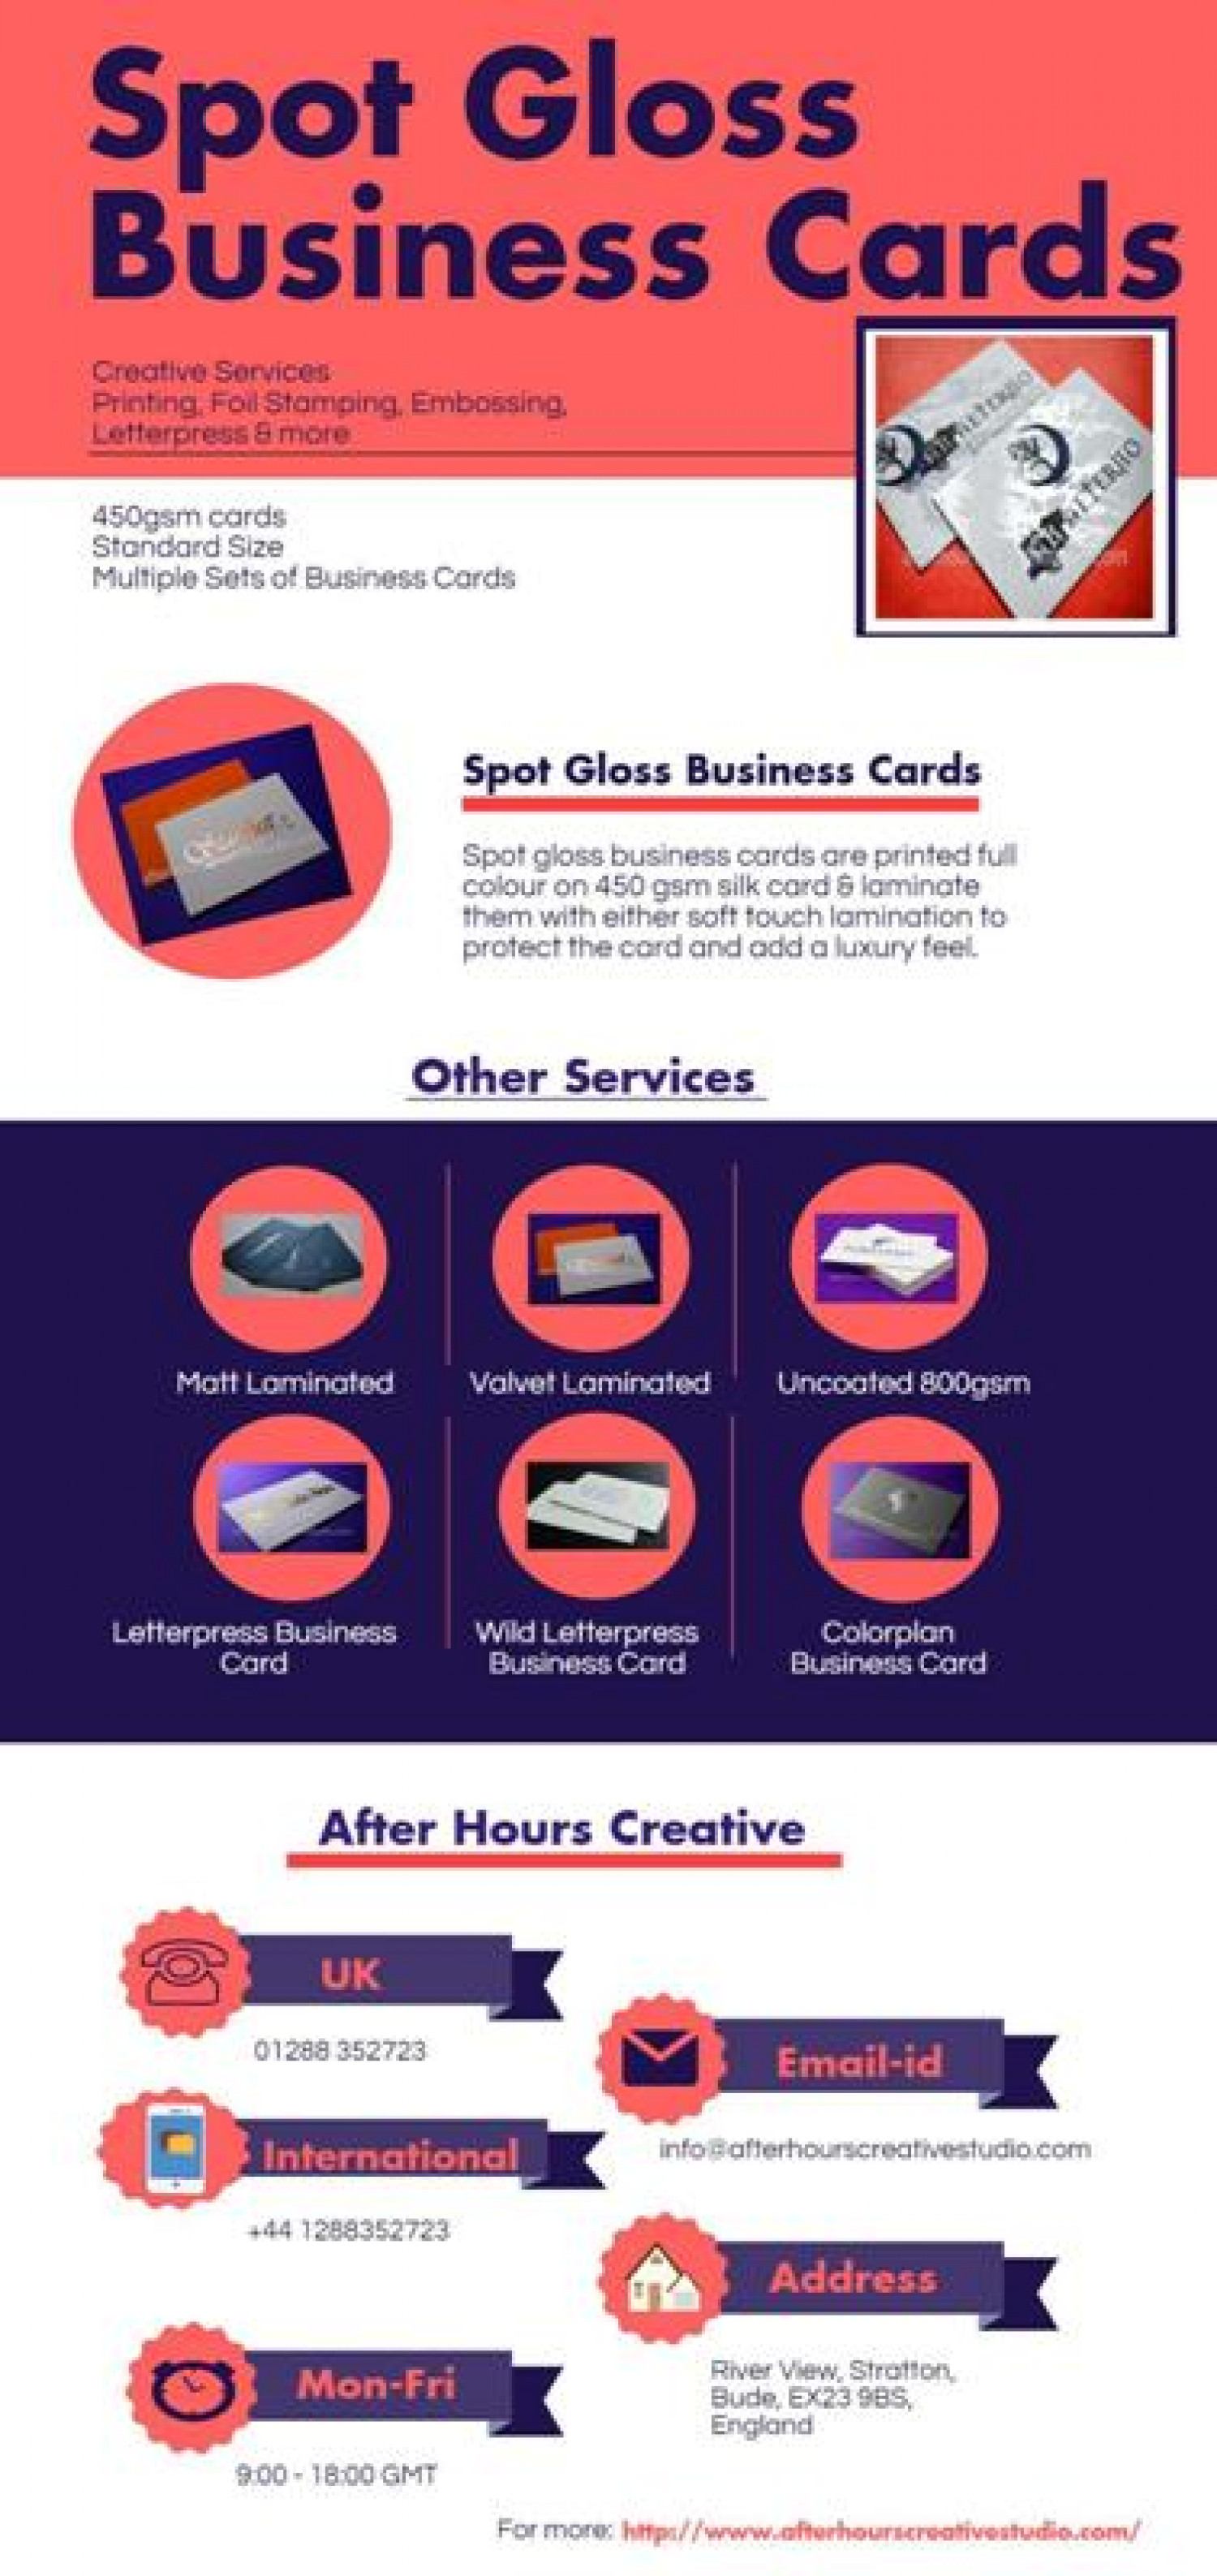 new pictures of spot gloss business cards business cards design